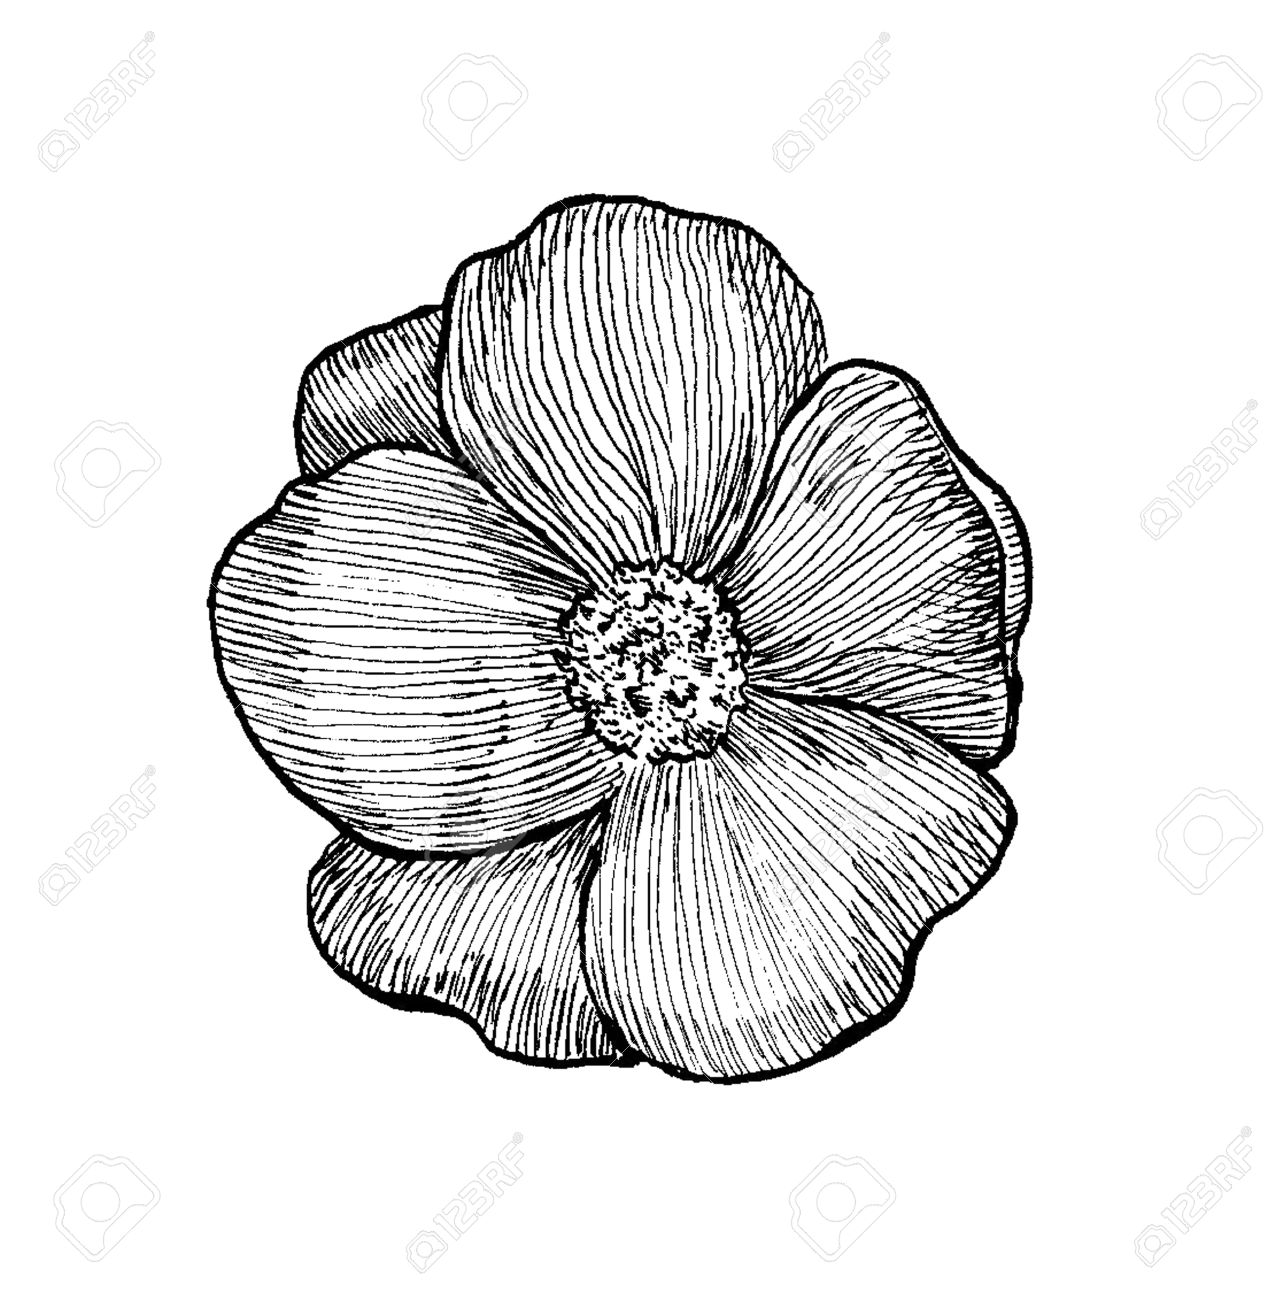 Black and white sketch of a dog rose flower ink pen hatching stock black and white sketch of a dog rose flower ink pen hatching stock photo 16710495 mightylinksfo